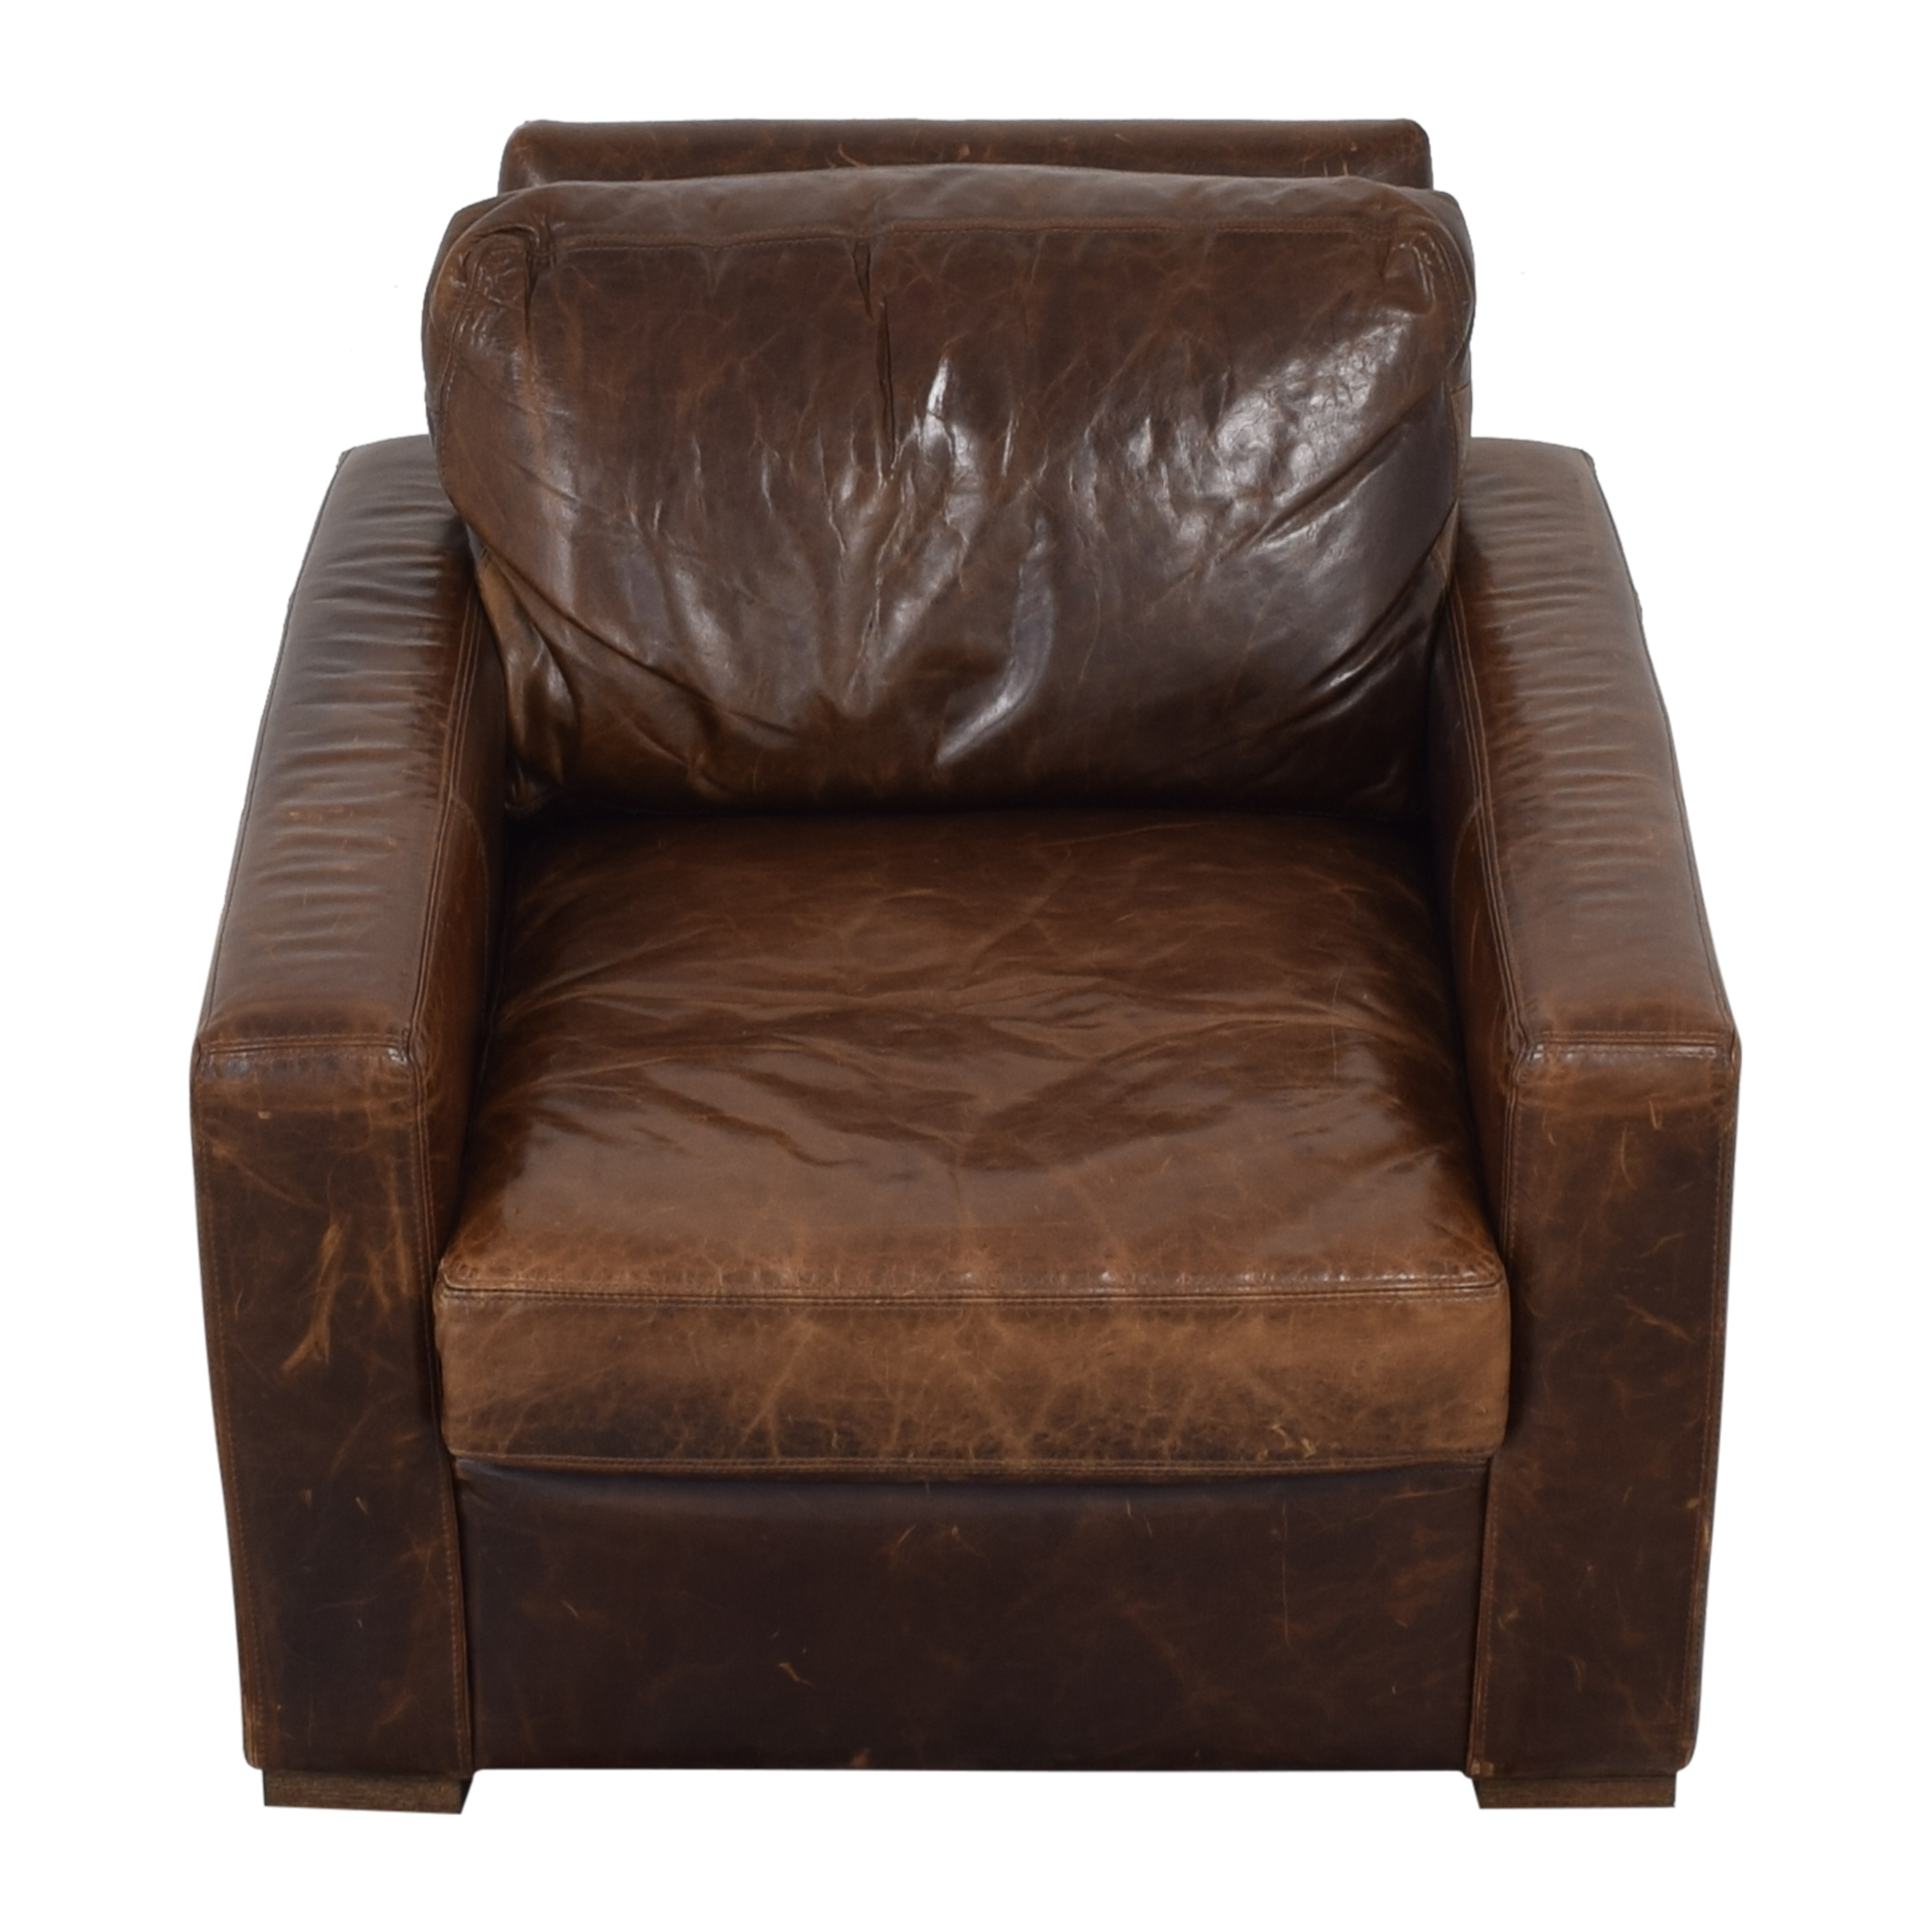 Restoration Hardware Restoration Hardware Petite Maxwell Chair and Ottoman second hand